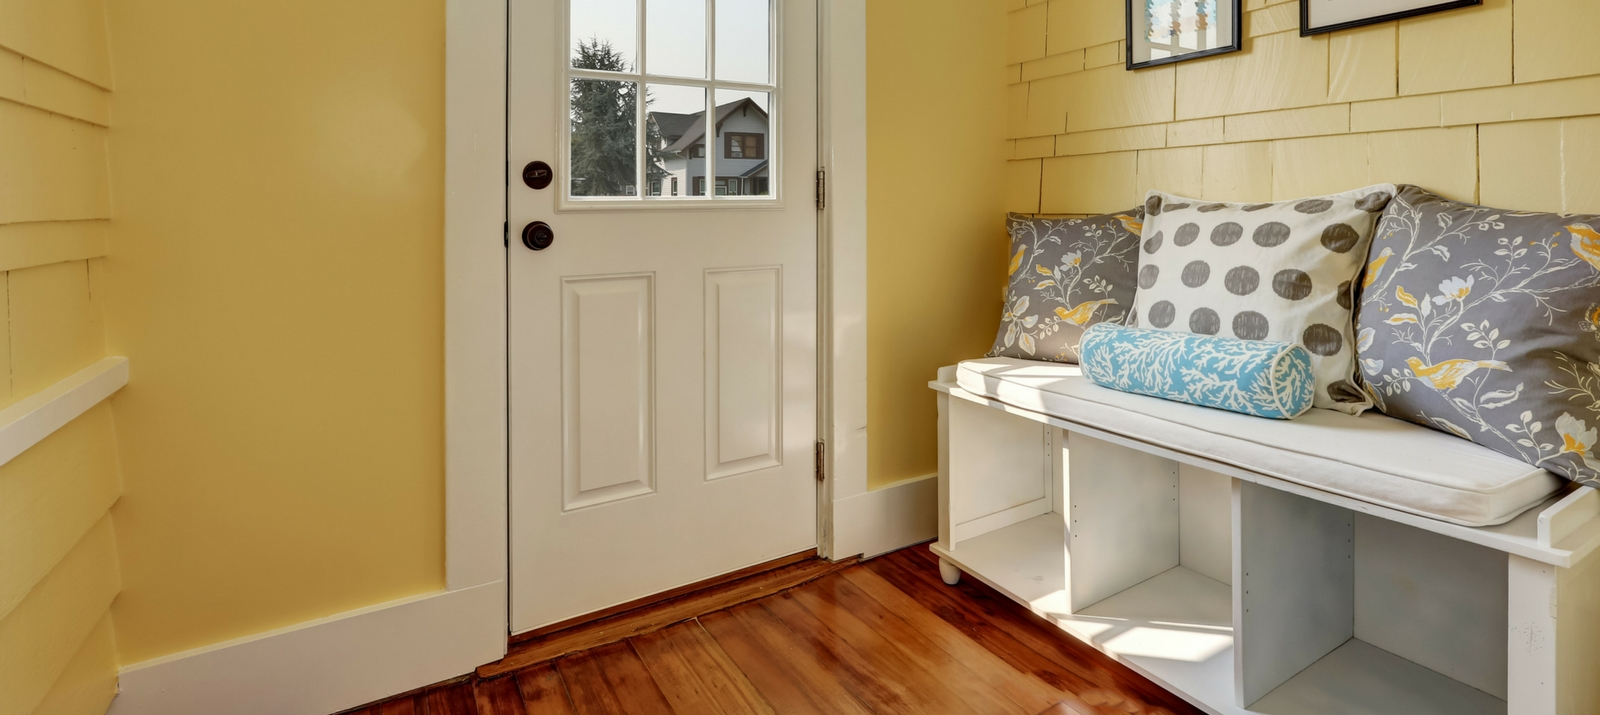 15 Amazing Multi-Purpose Entryway Storage Hacks That You'll LOVE